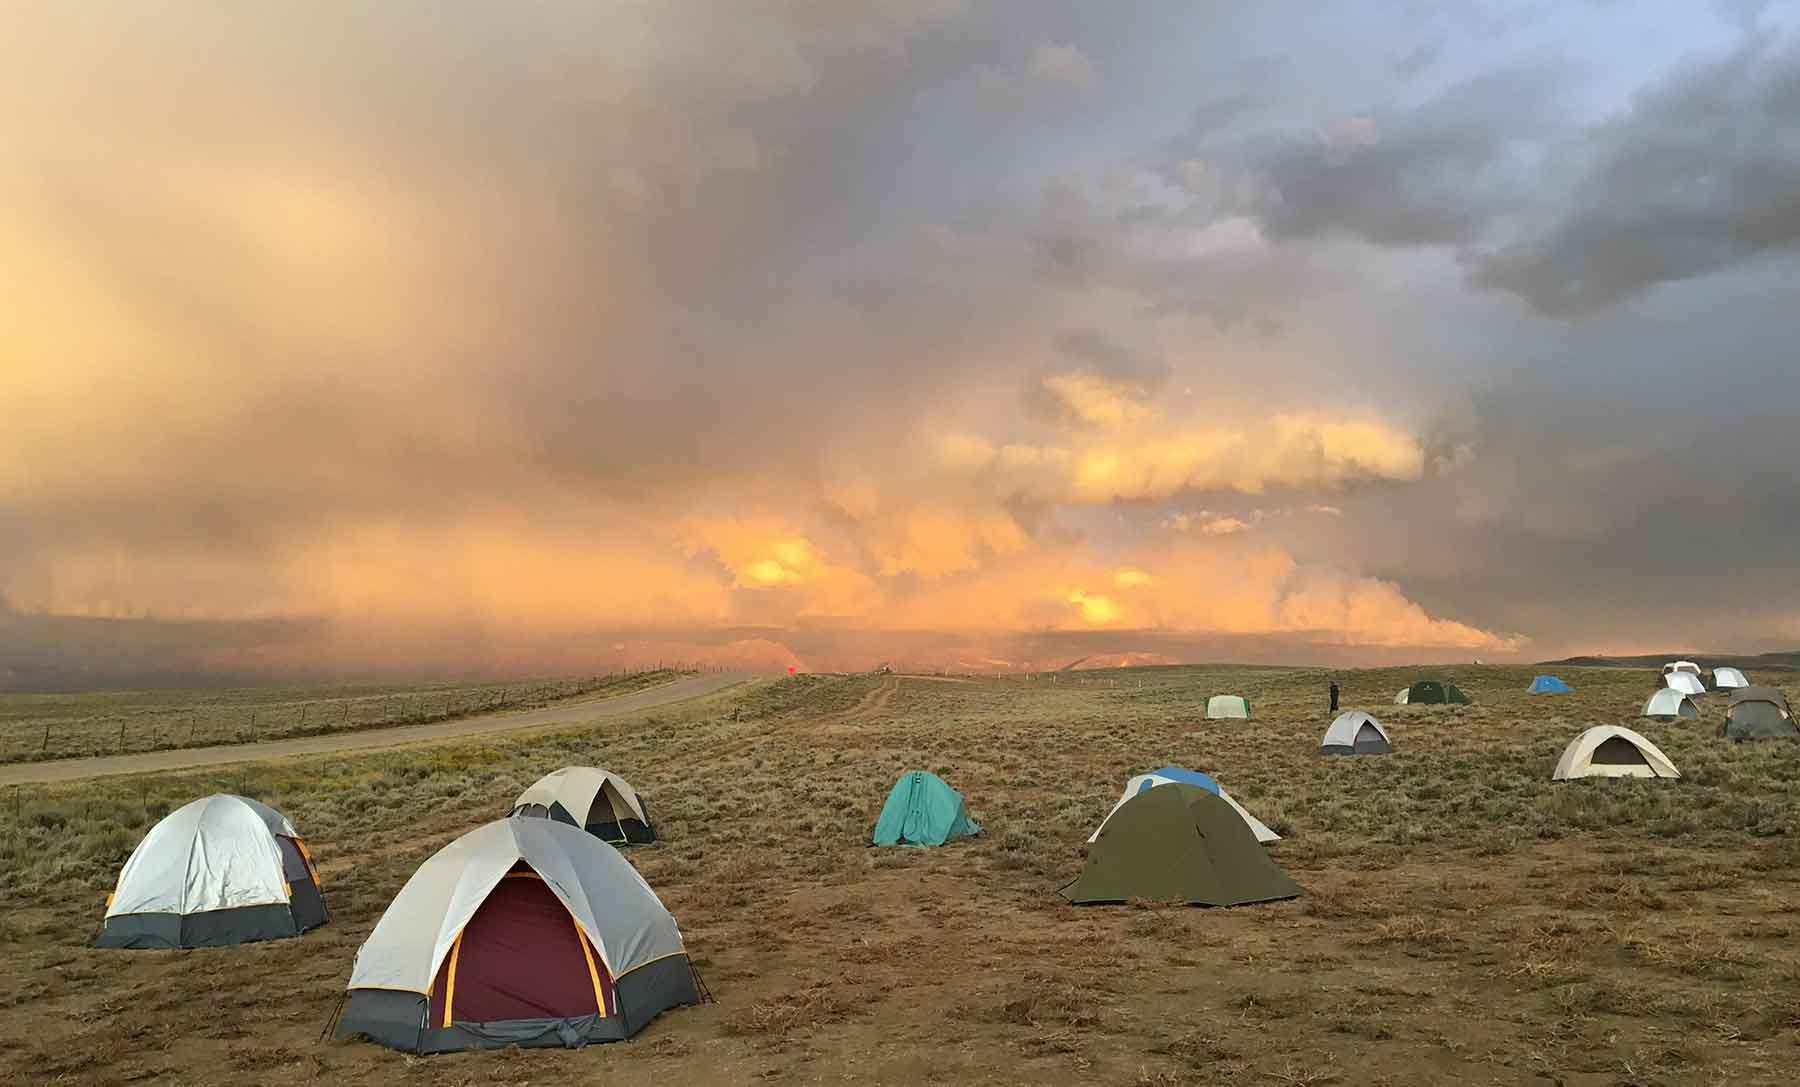 Photo of several tents pitched in an open field.